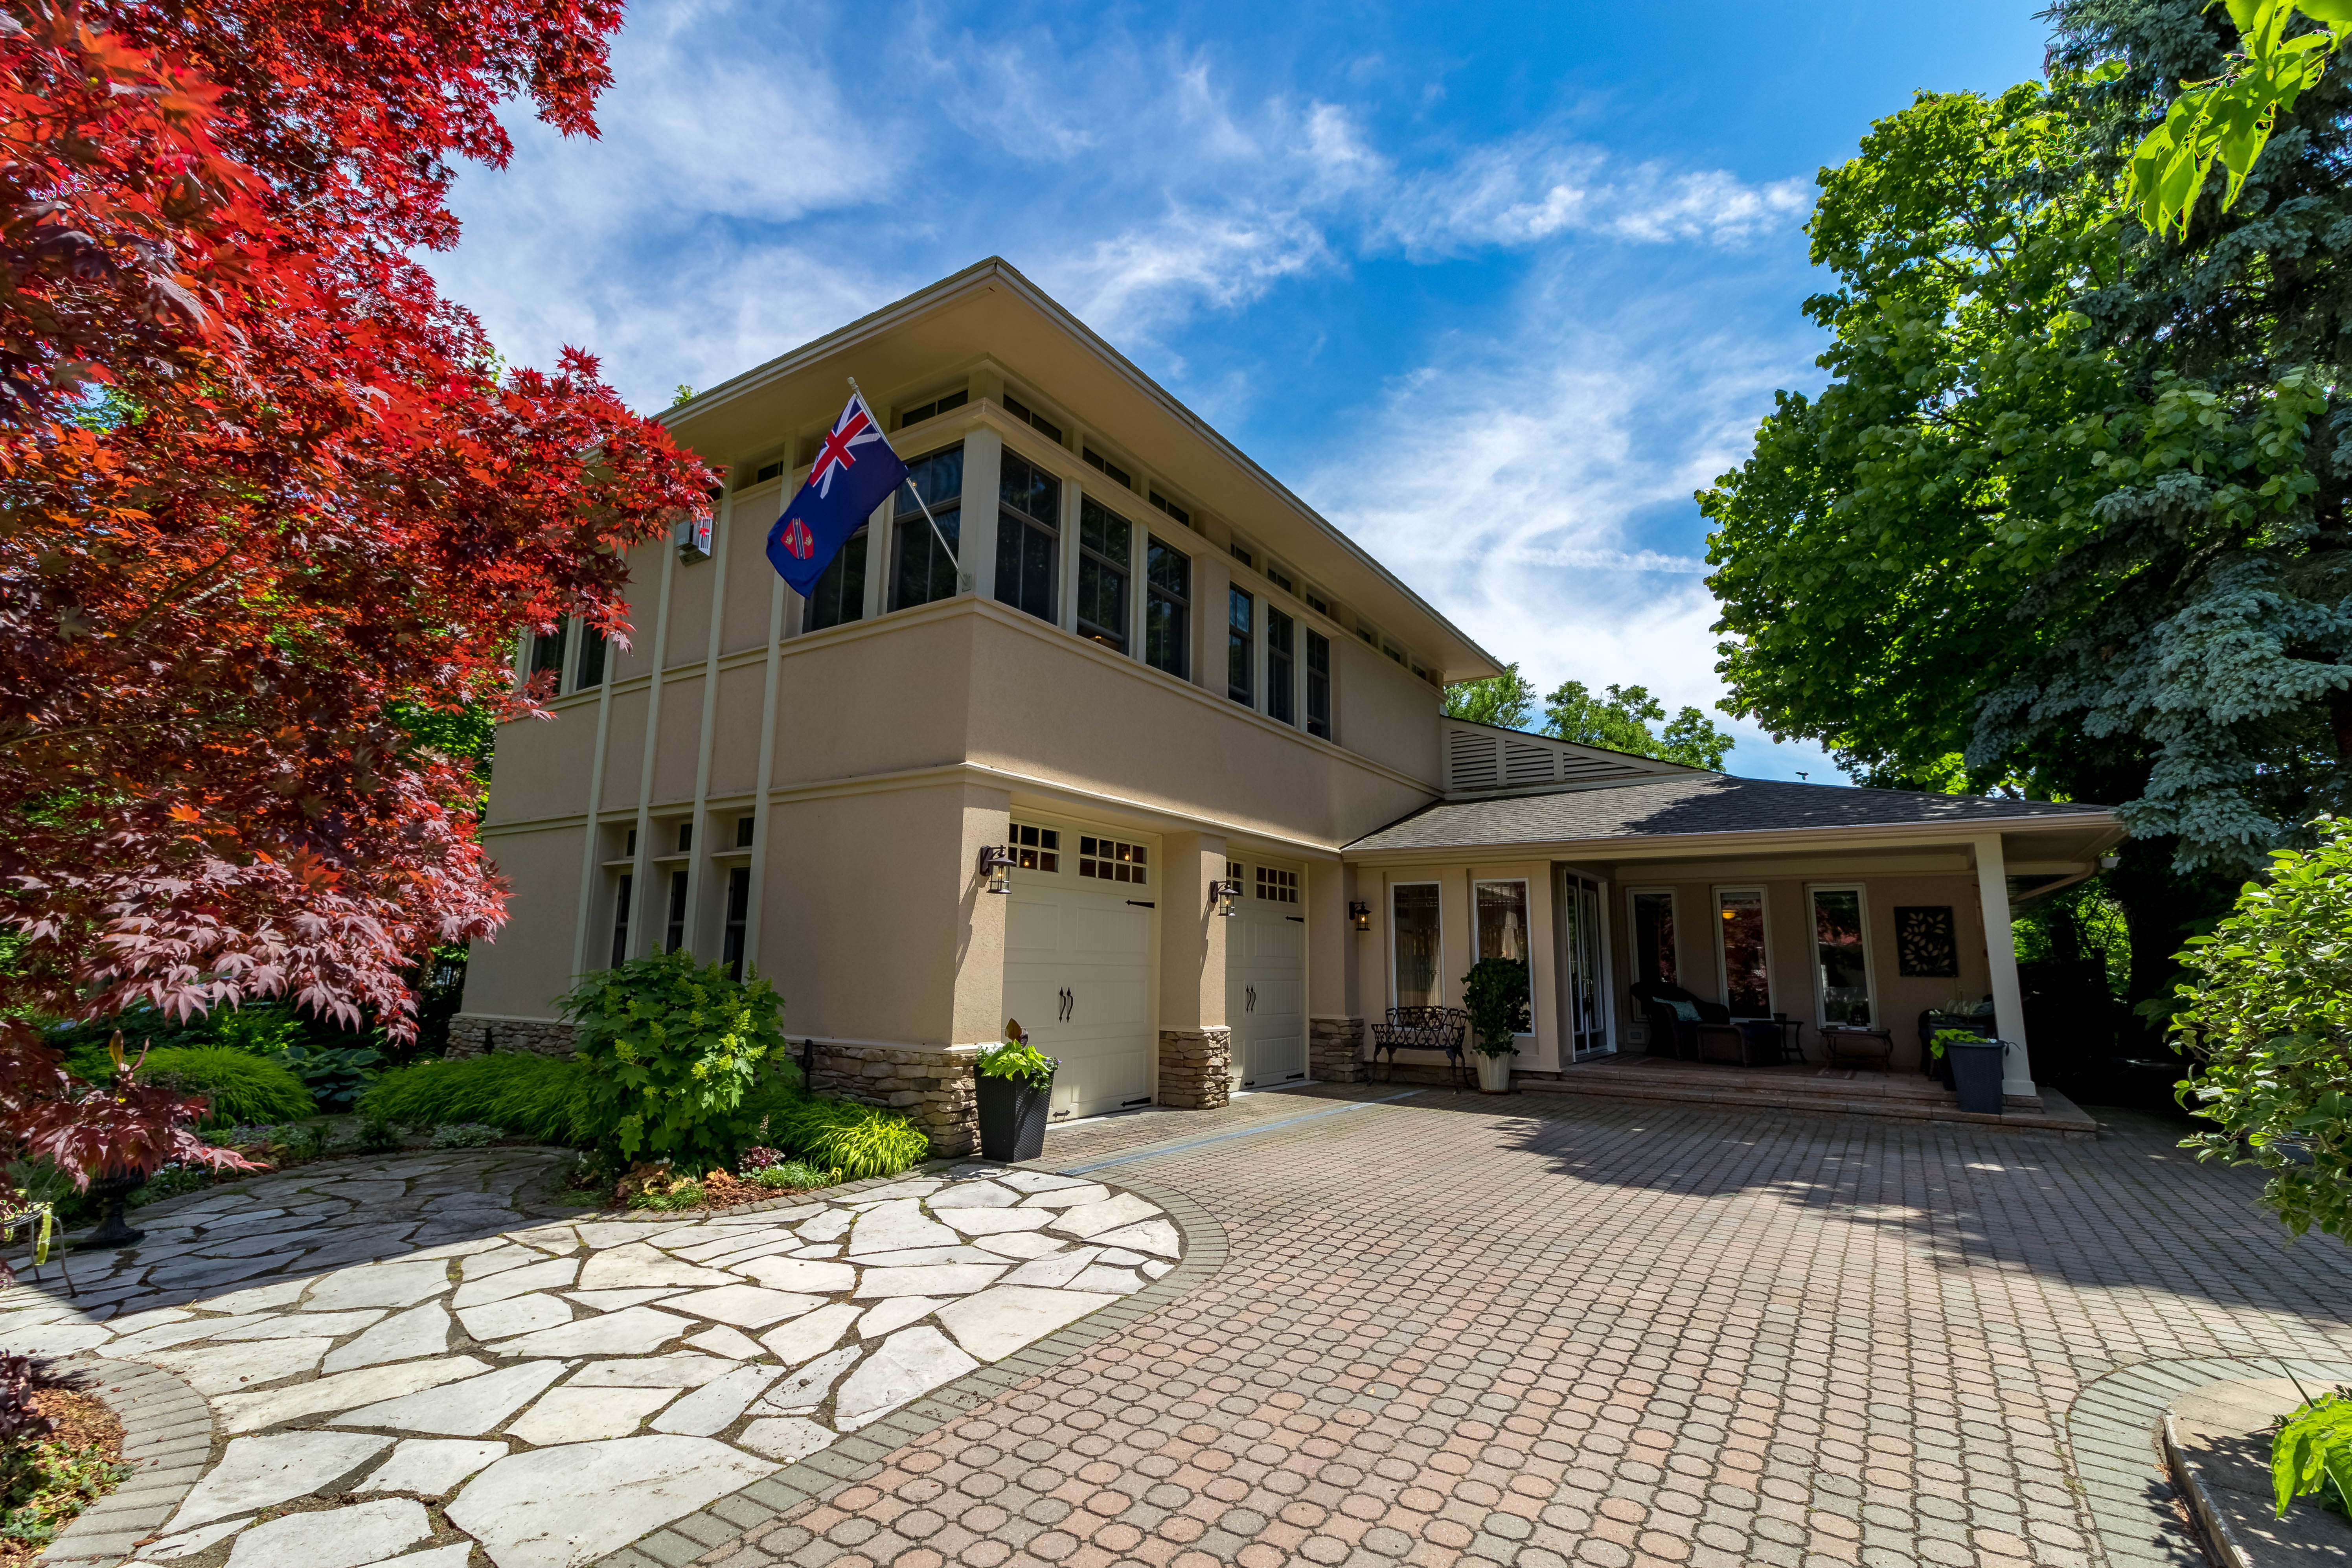 Property image for 158 Prideaux Street, Niagara-on-the-Lake